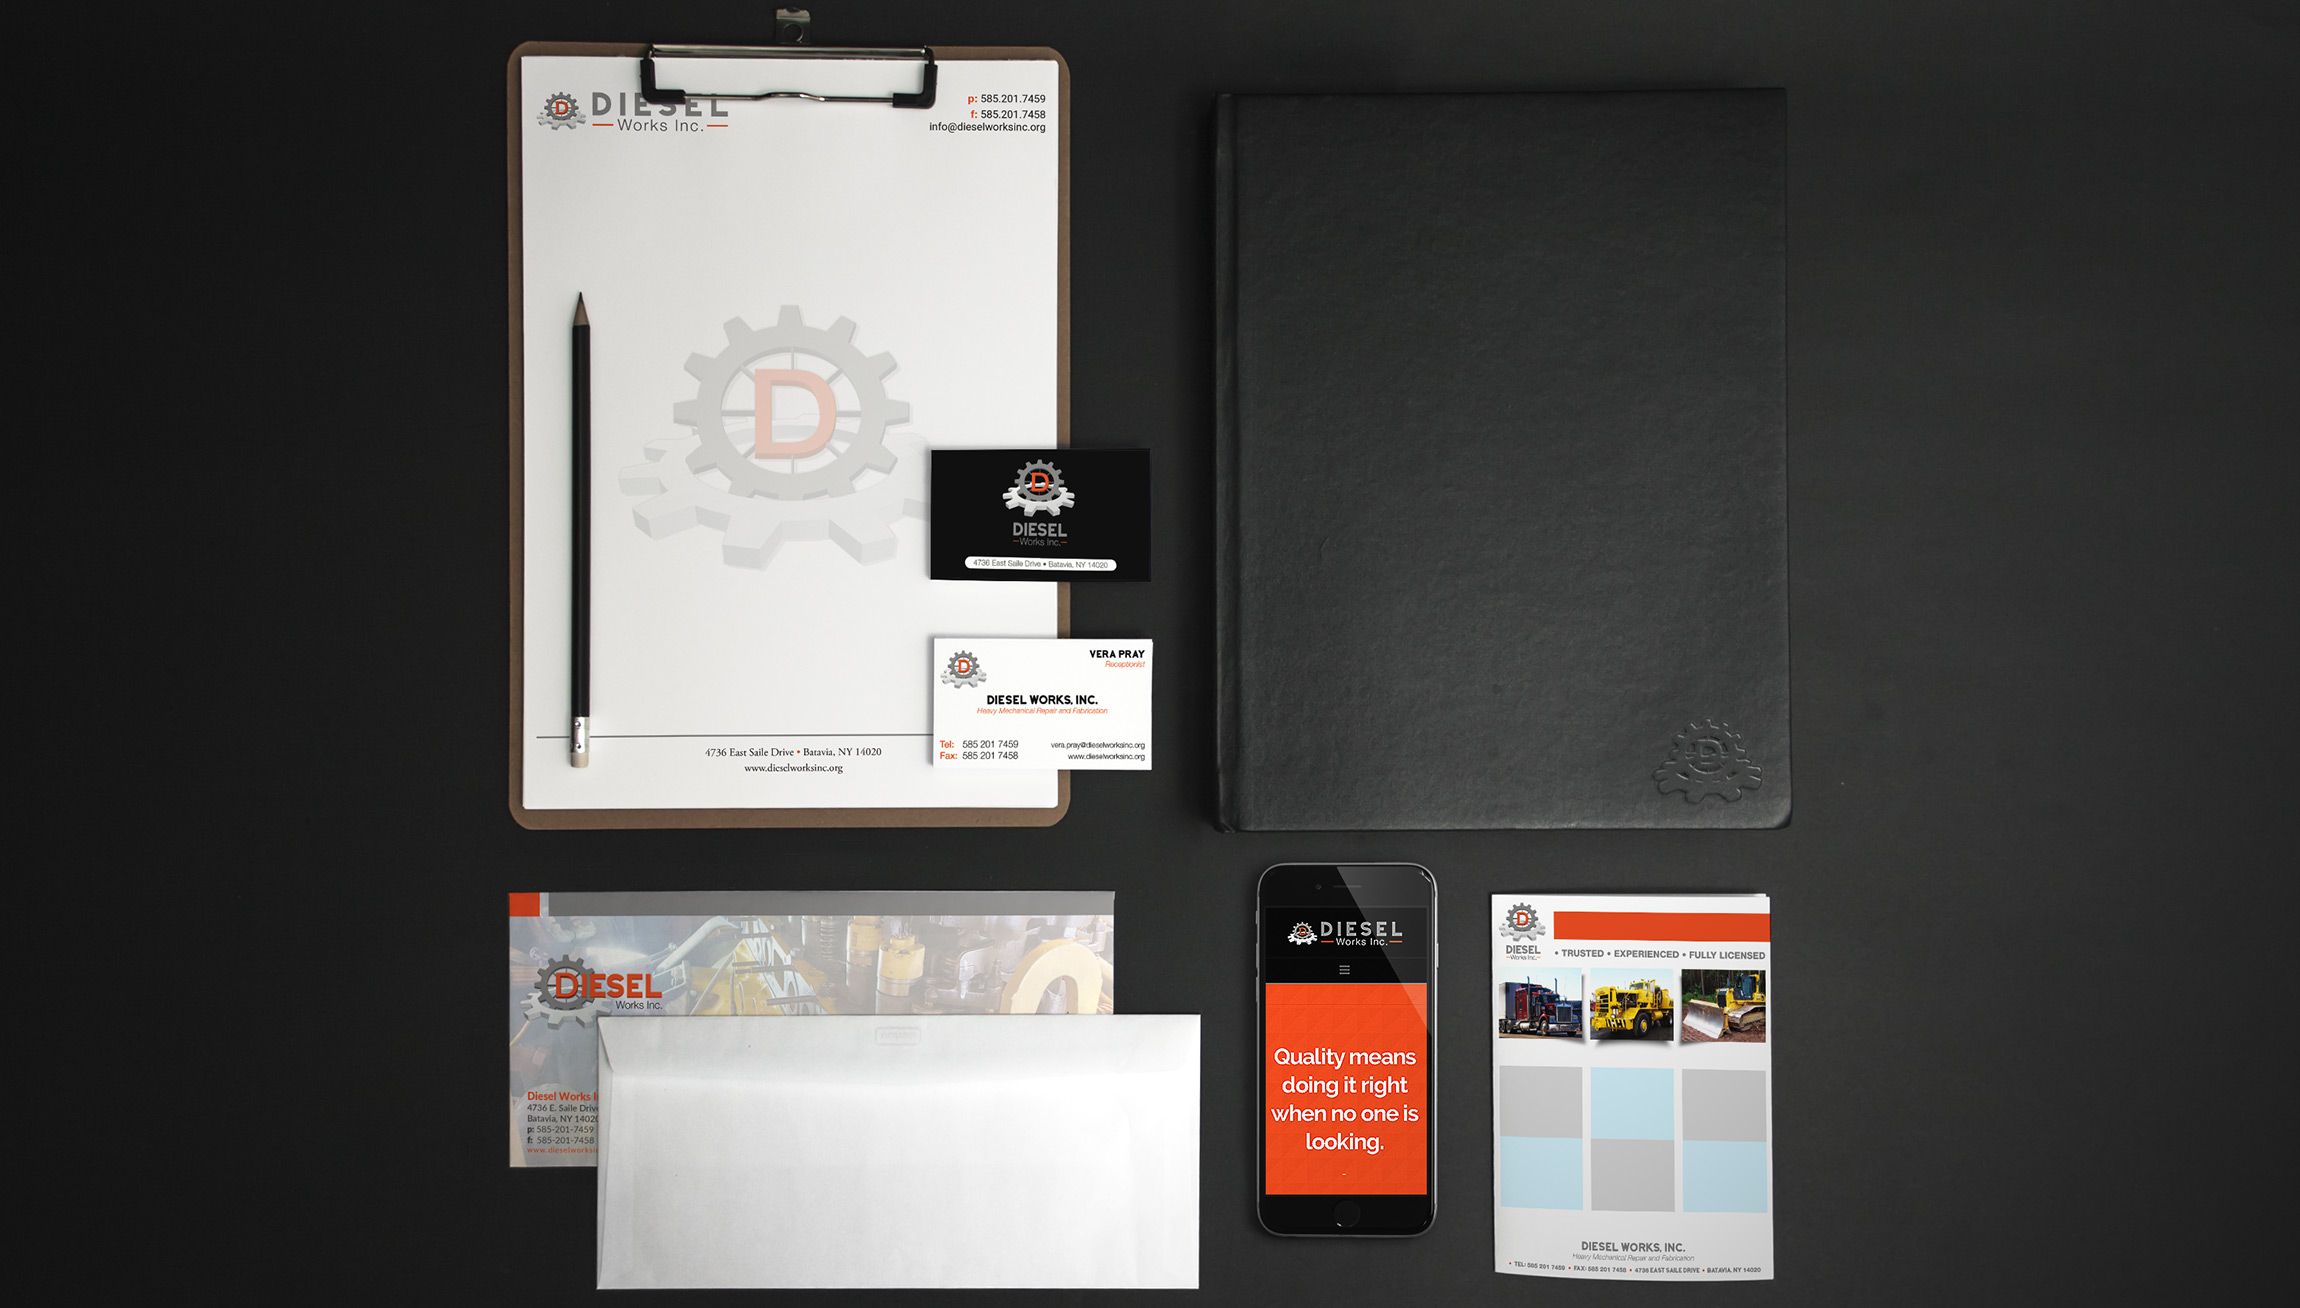 Printing and Design - Branded Materials mockups for Diesel Works Inc. including envelopes, letterhead, business cards, a padfolio, mobile website and a handout.